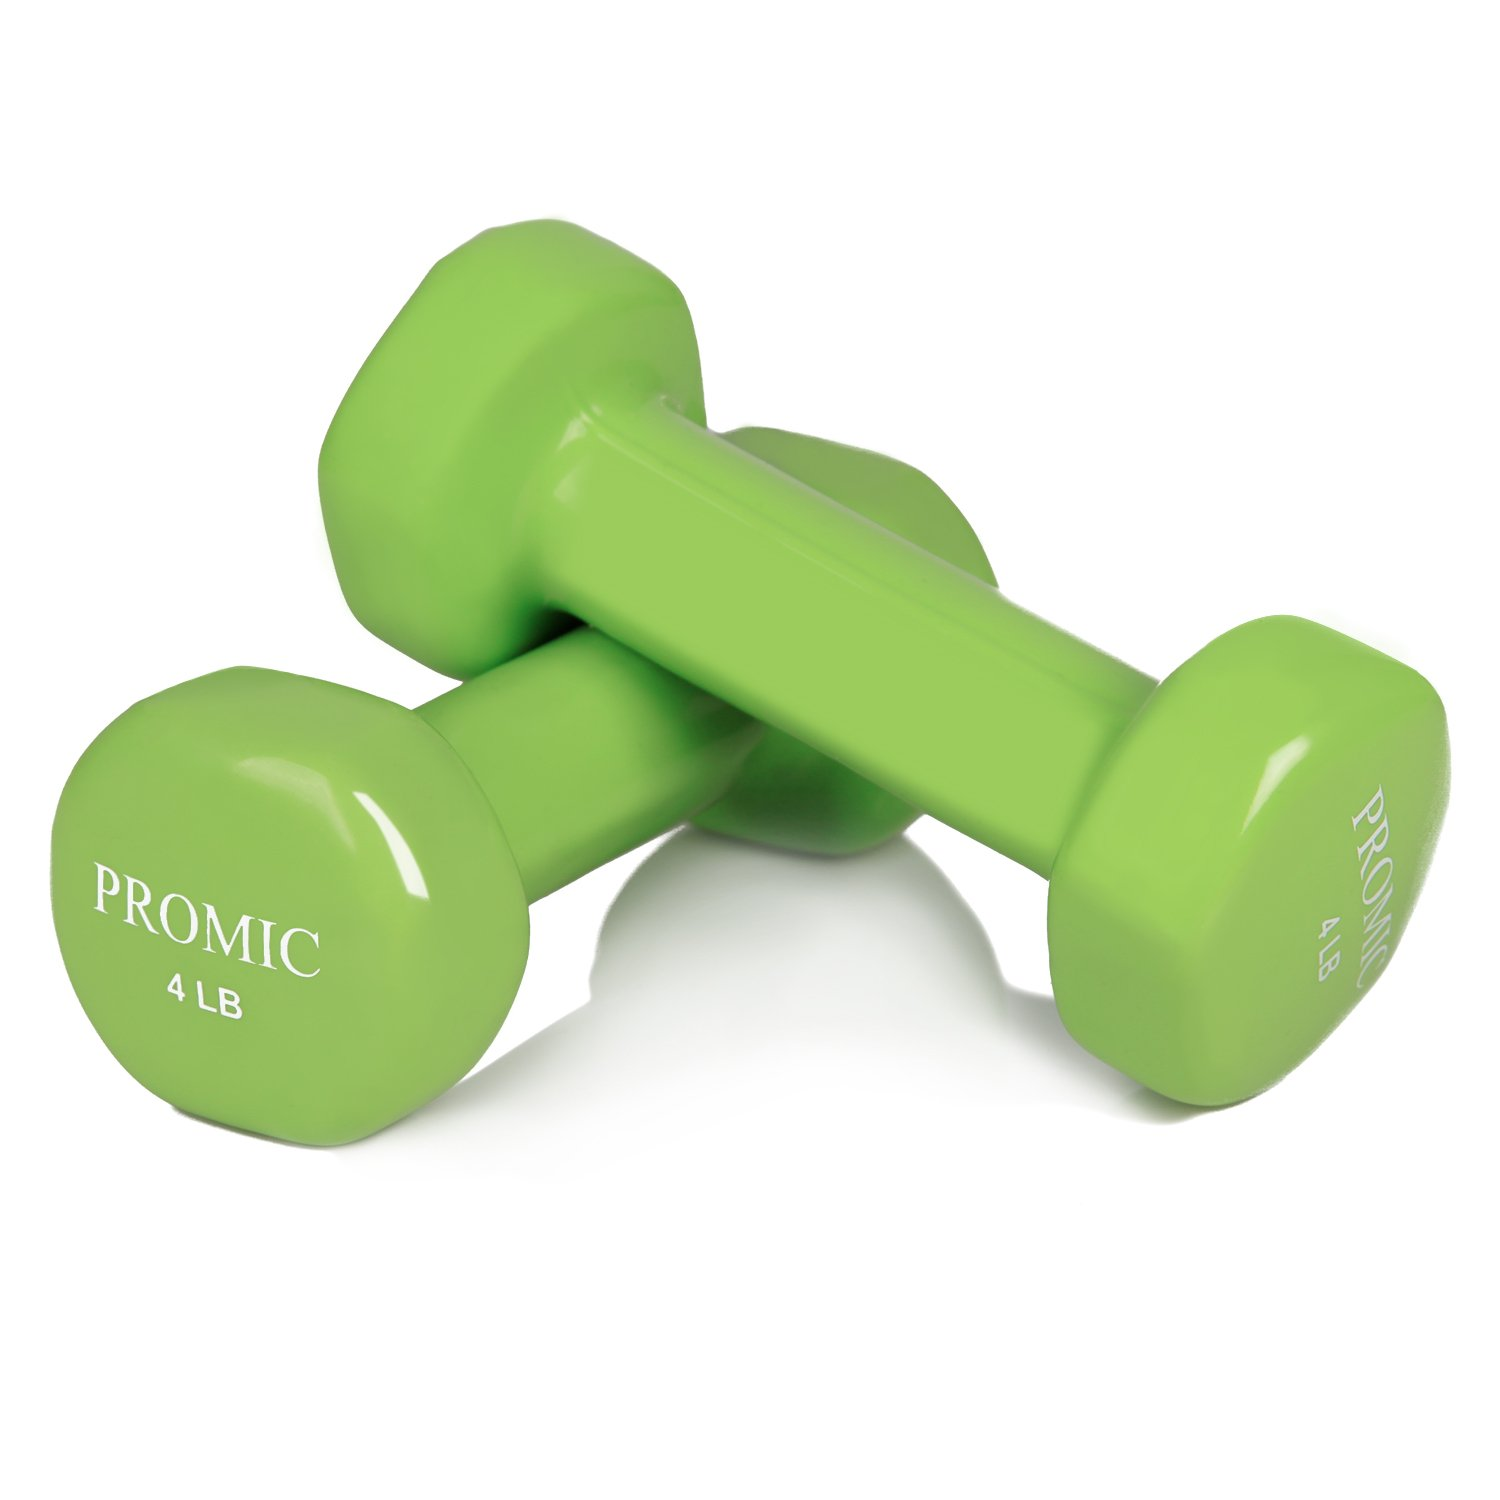 PROMIC 1lb to 20lb Hand Weights Deluxe Vinyl Coated Dumbbells (Sold in Pair) - Non Slip, Multi Colors Available